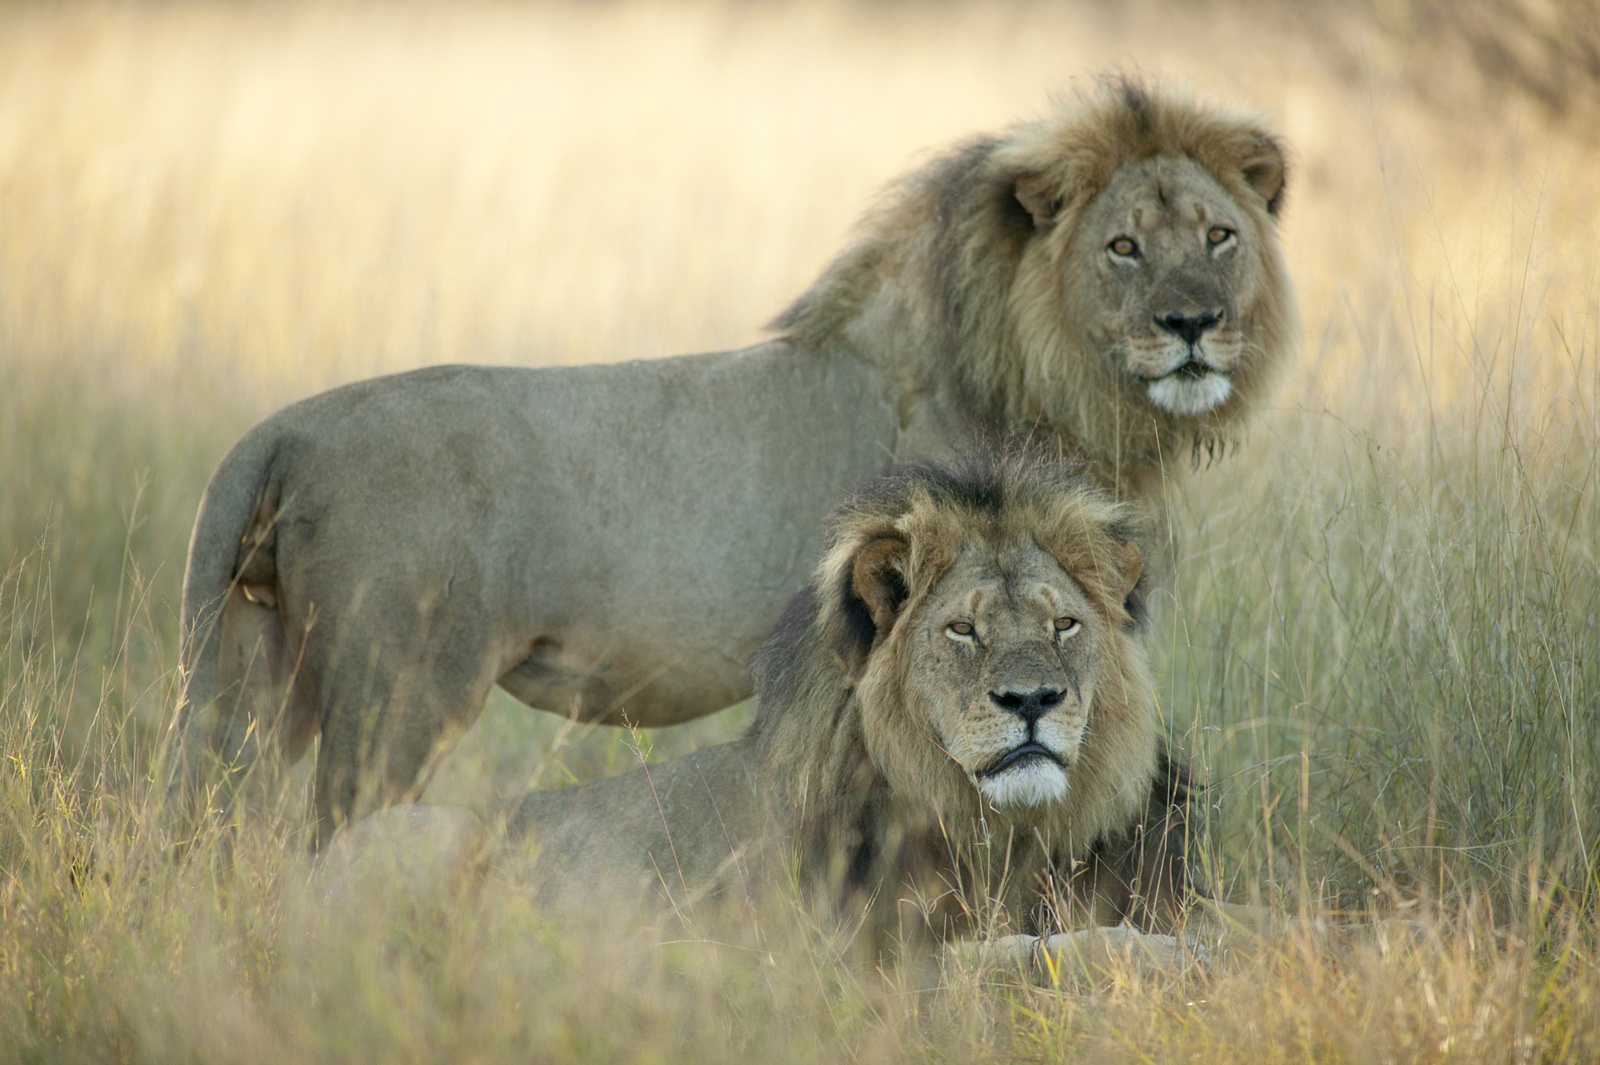 The Last Known Photo of Cecil the Lion, and the Story Behind It